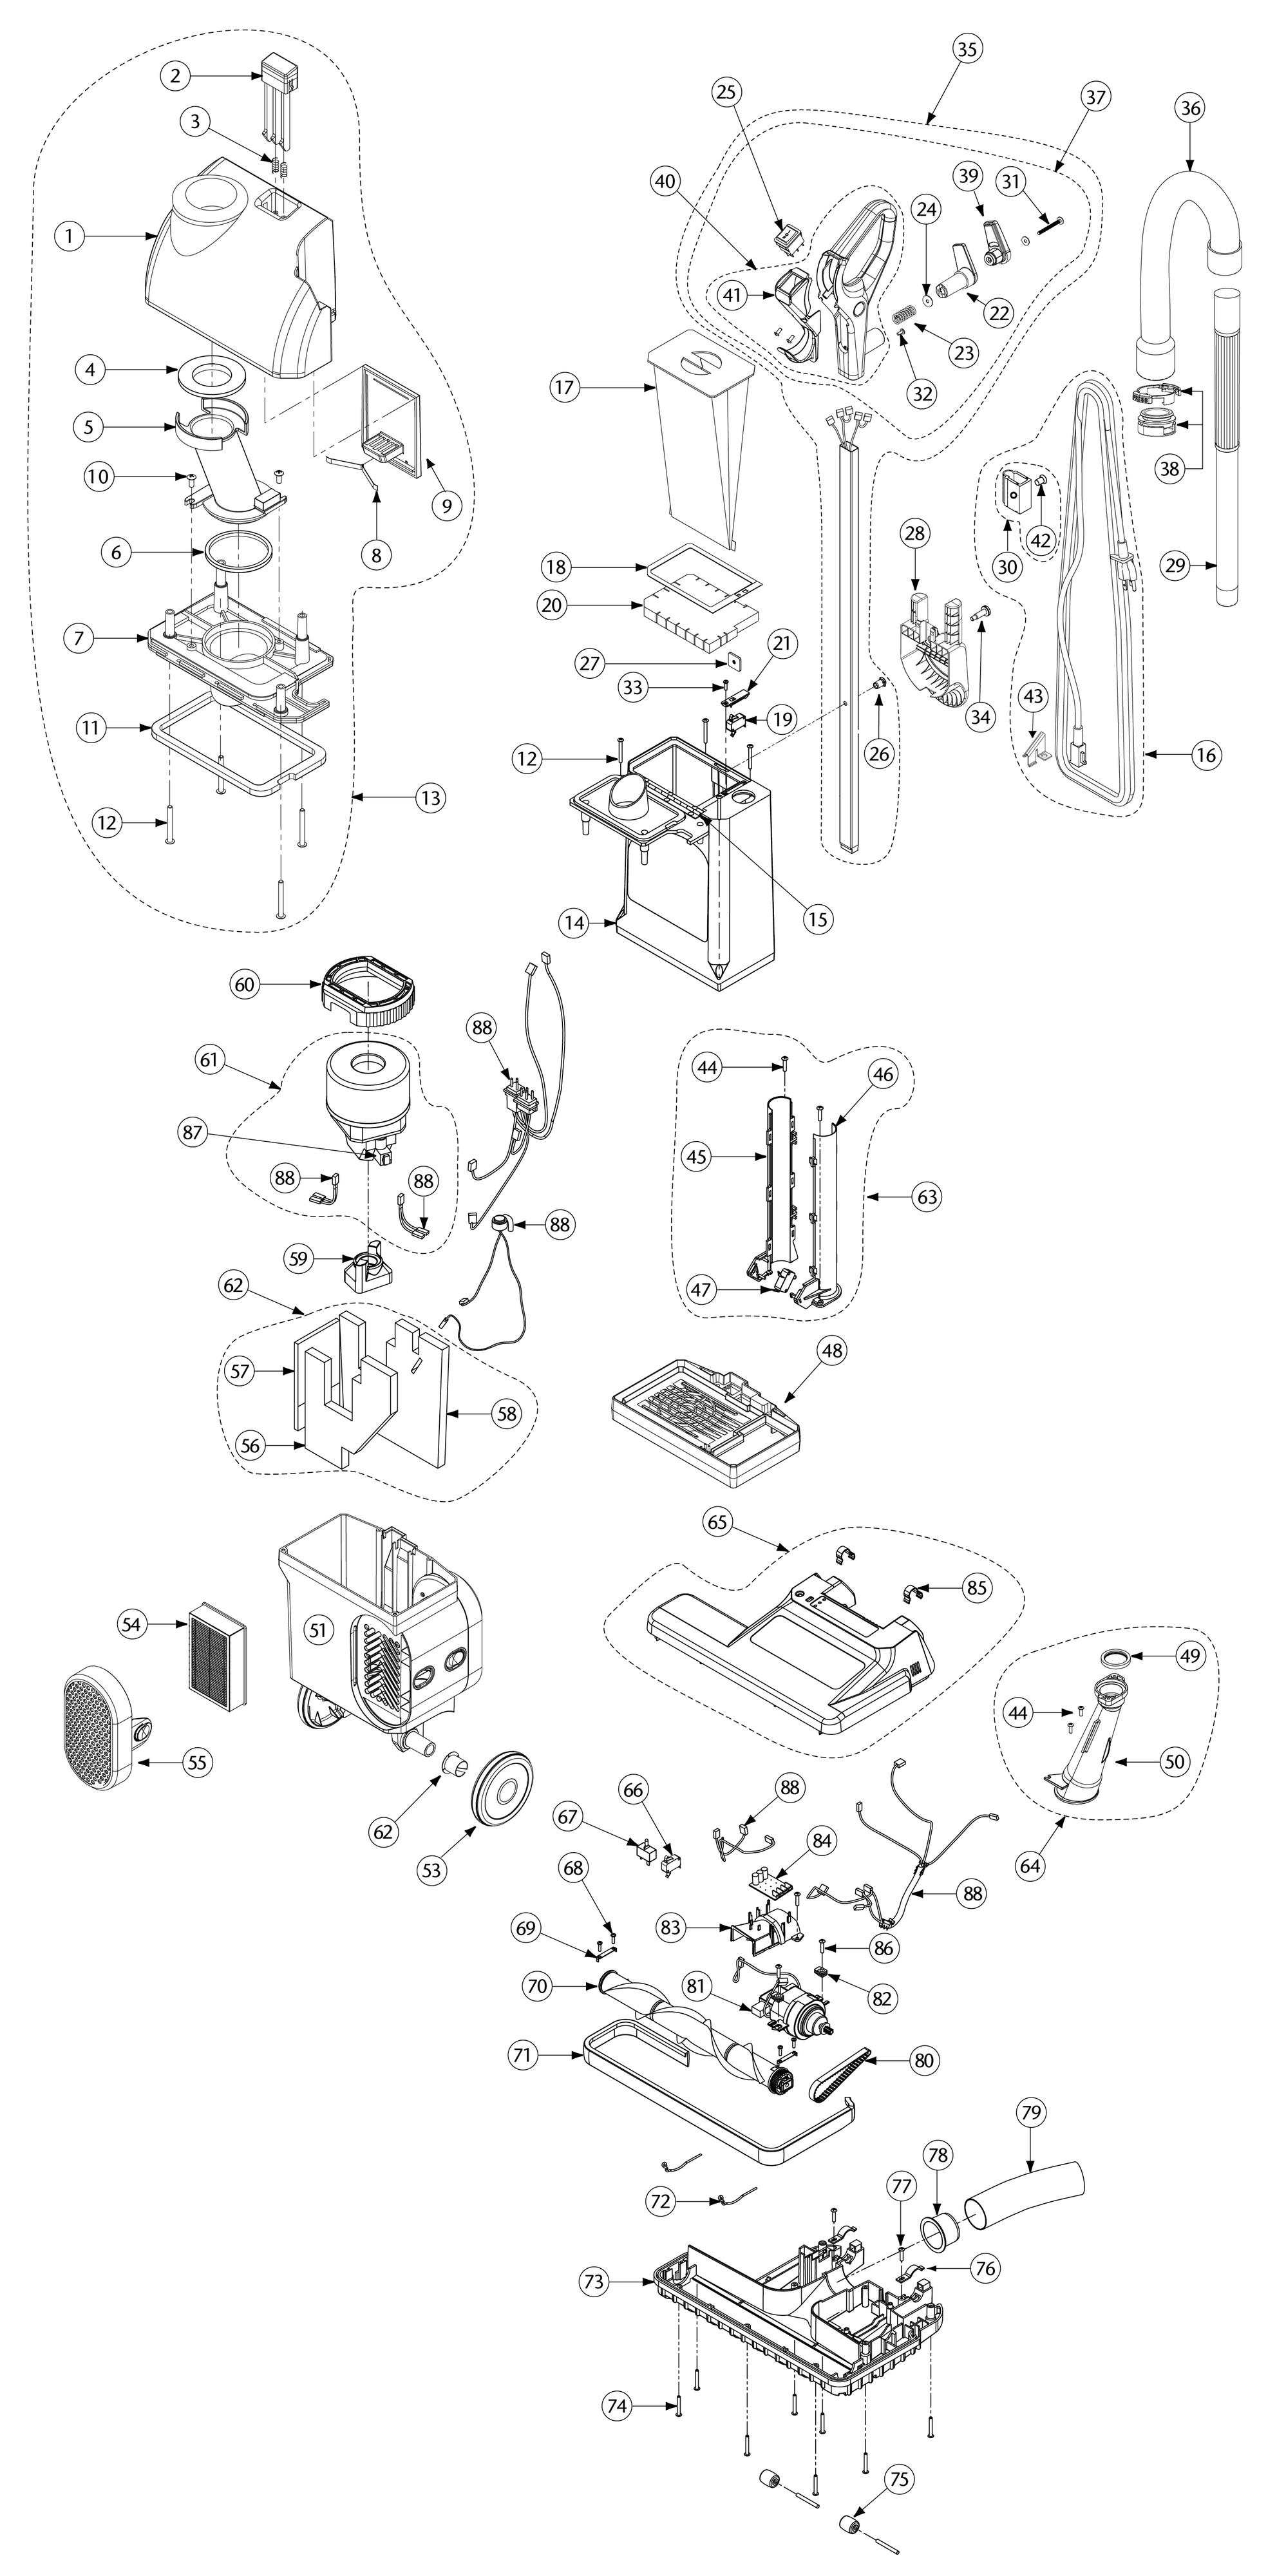 Parts List for 107252